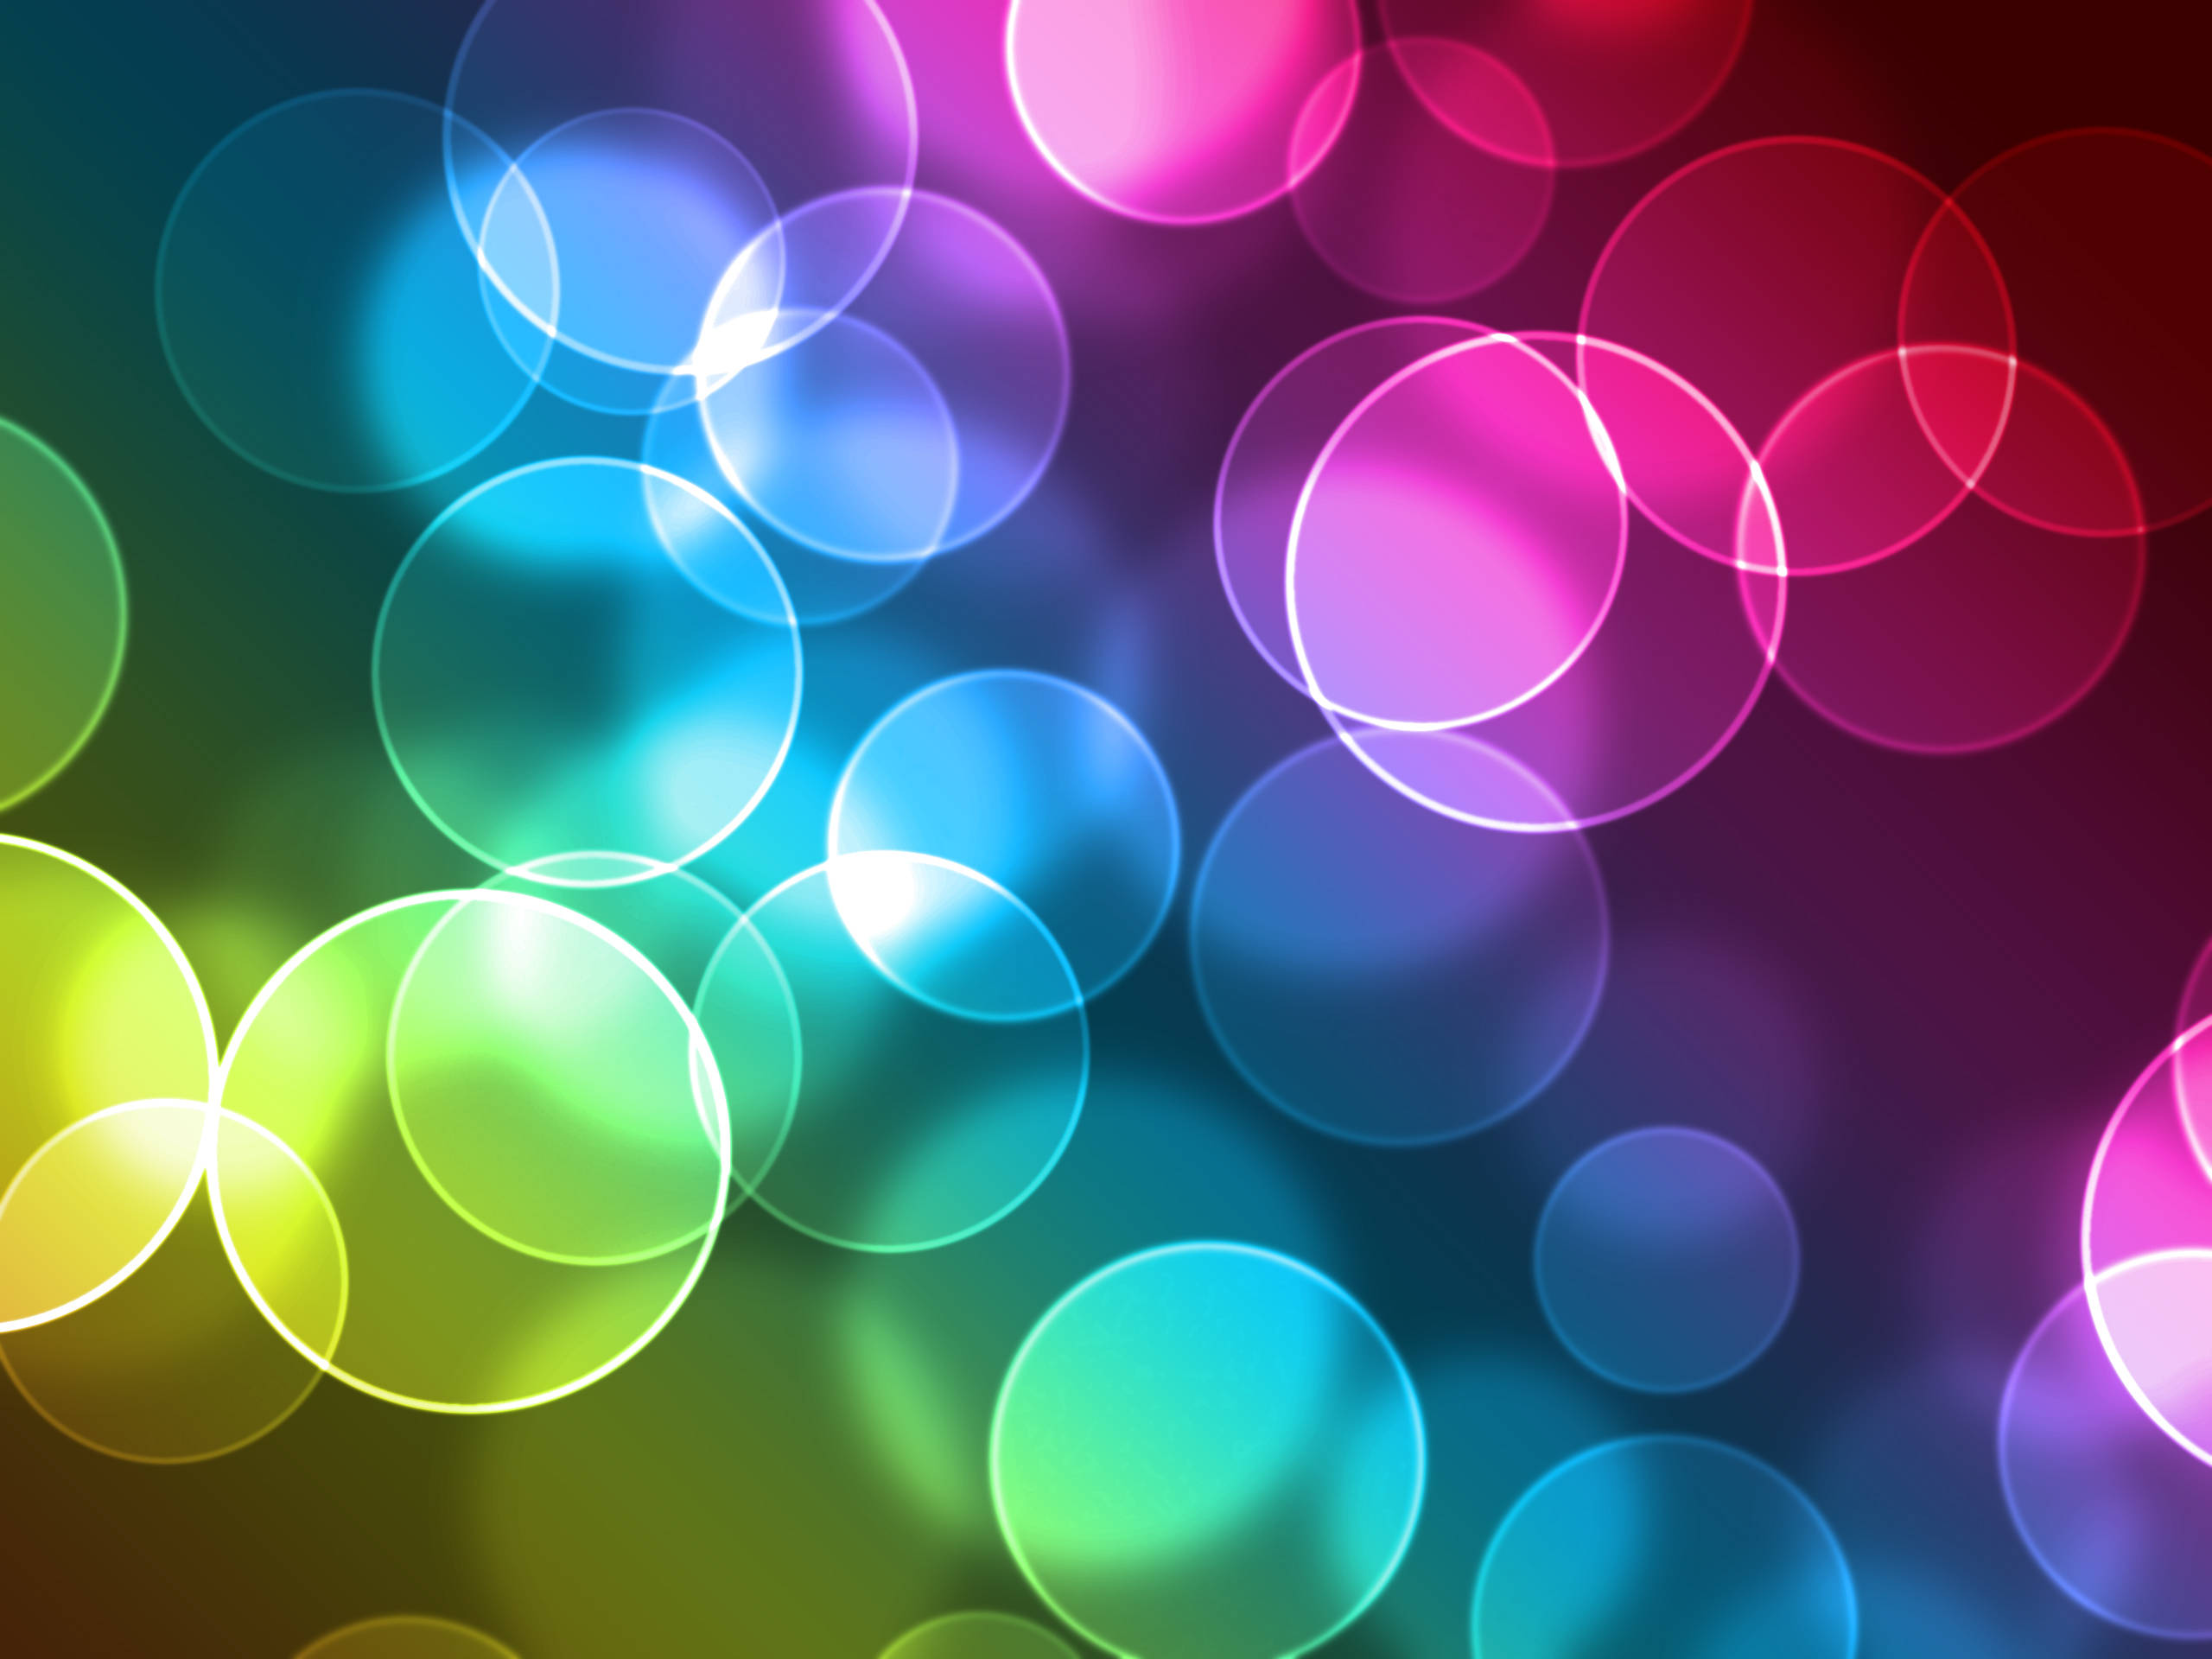 Multicolor Wallpaper 2560x1920 57589